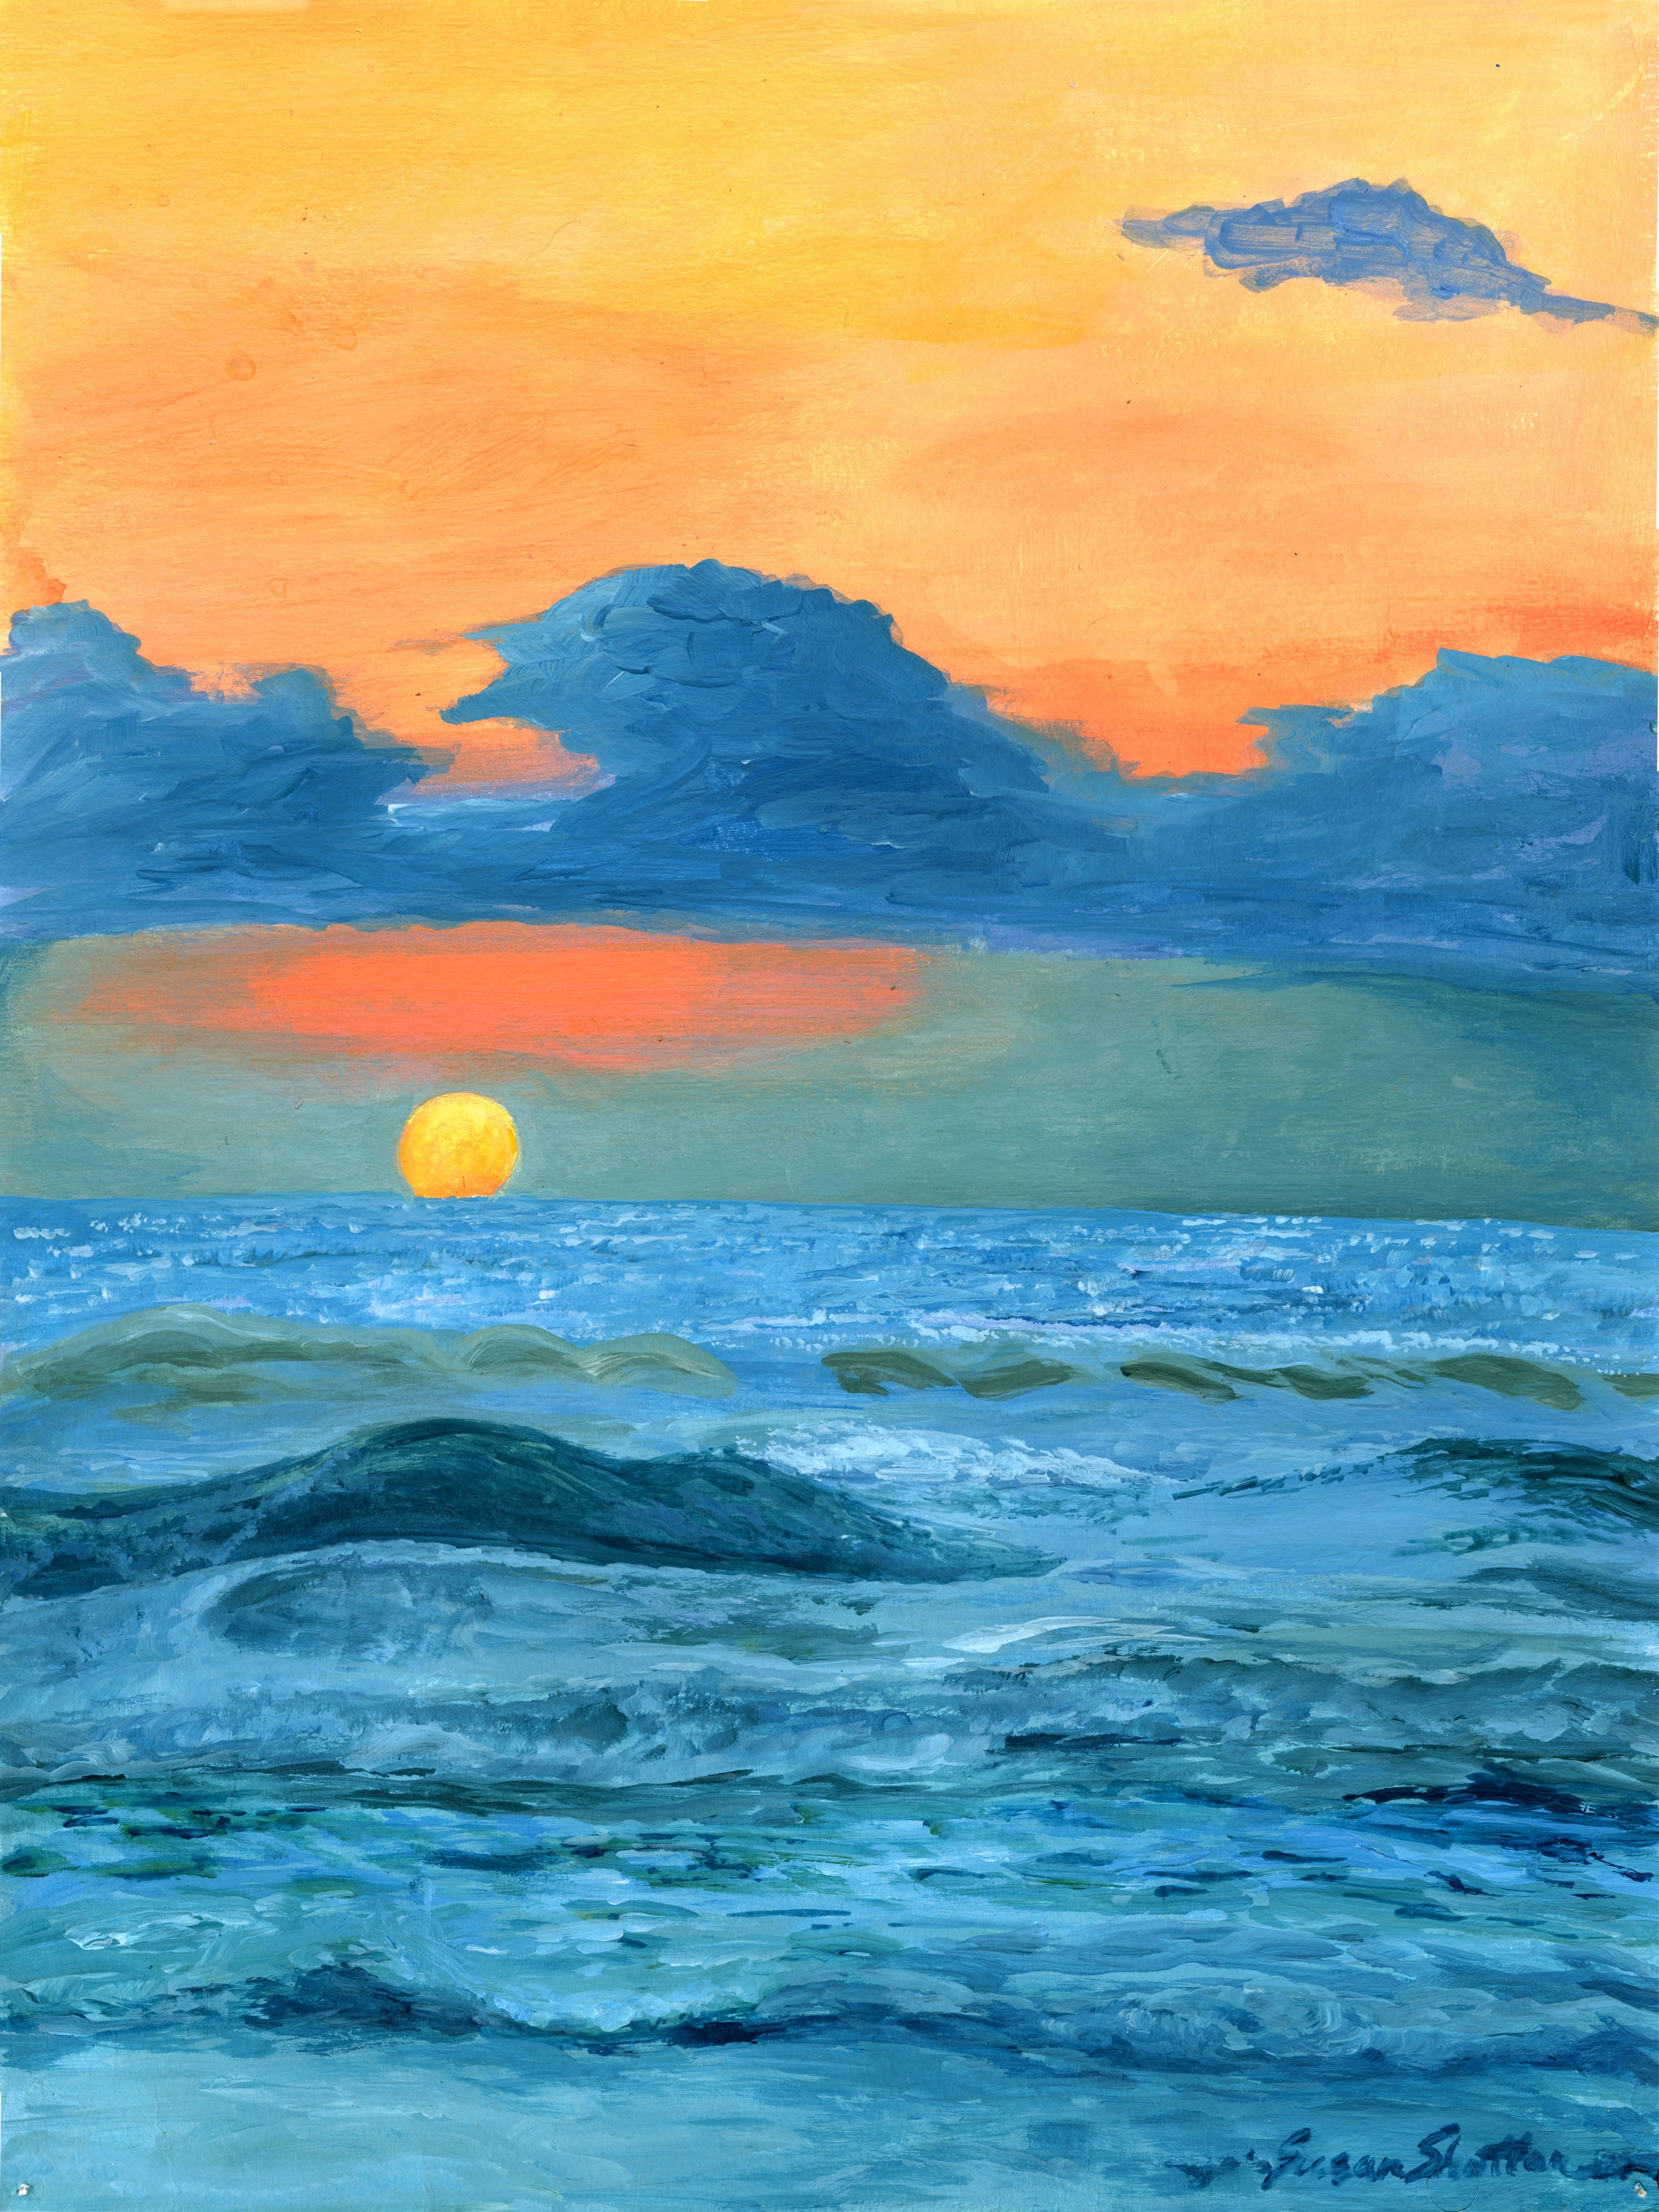 LOVING IN THE MOMENT  nothing better than a beautiful sunset at the end of a summer day  14x 19 Summer 2015